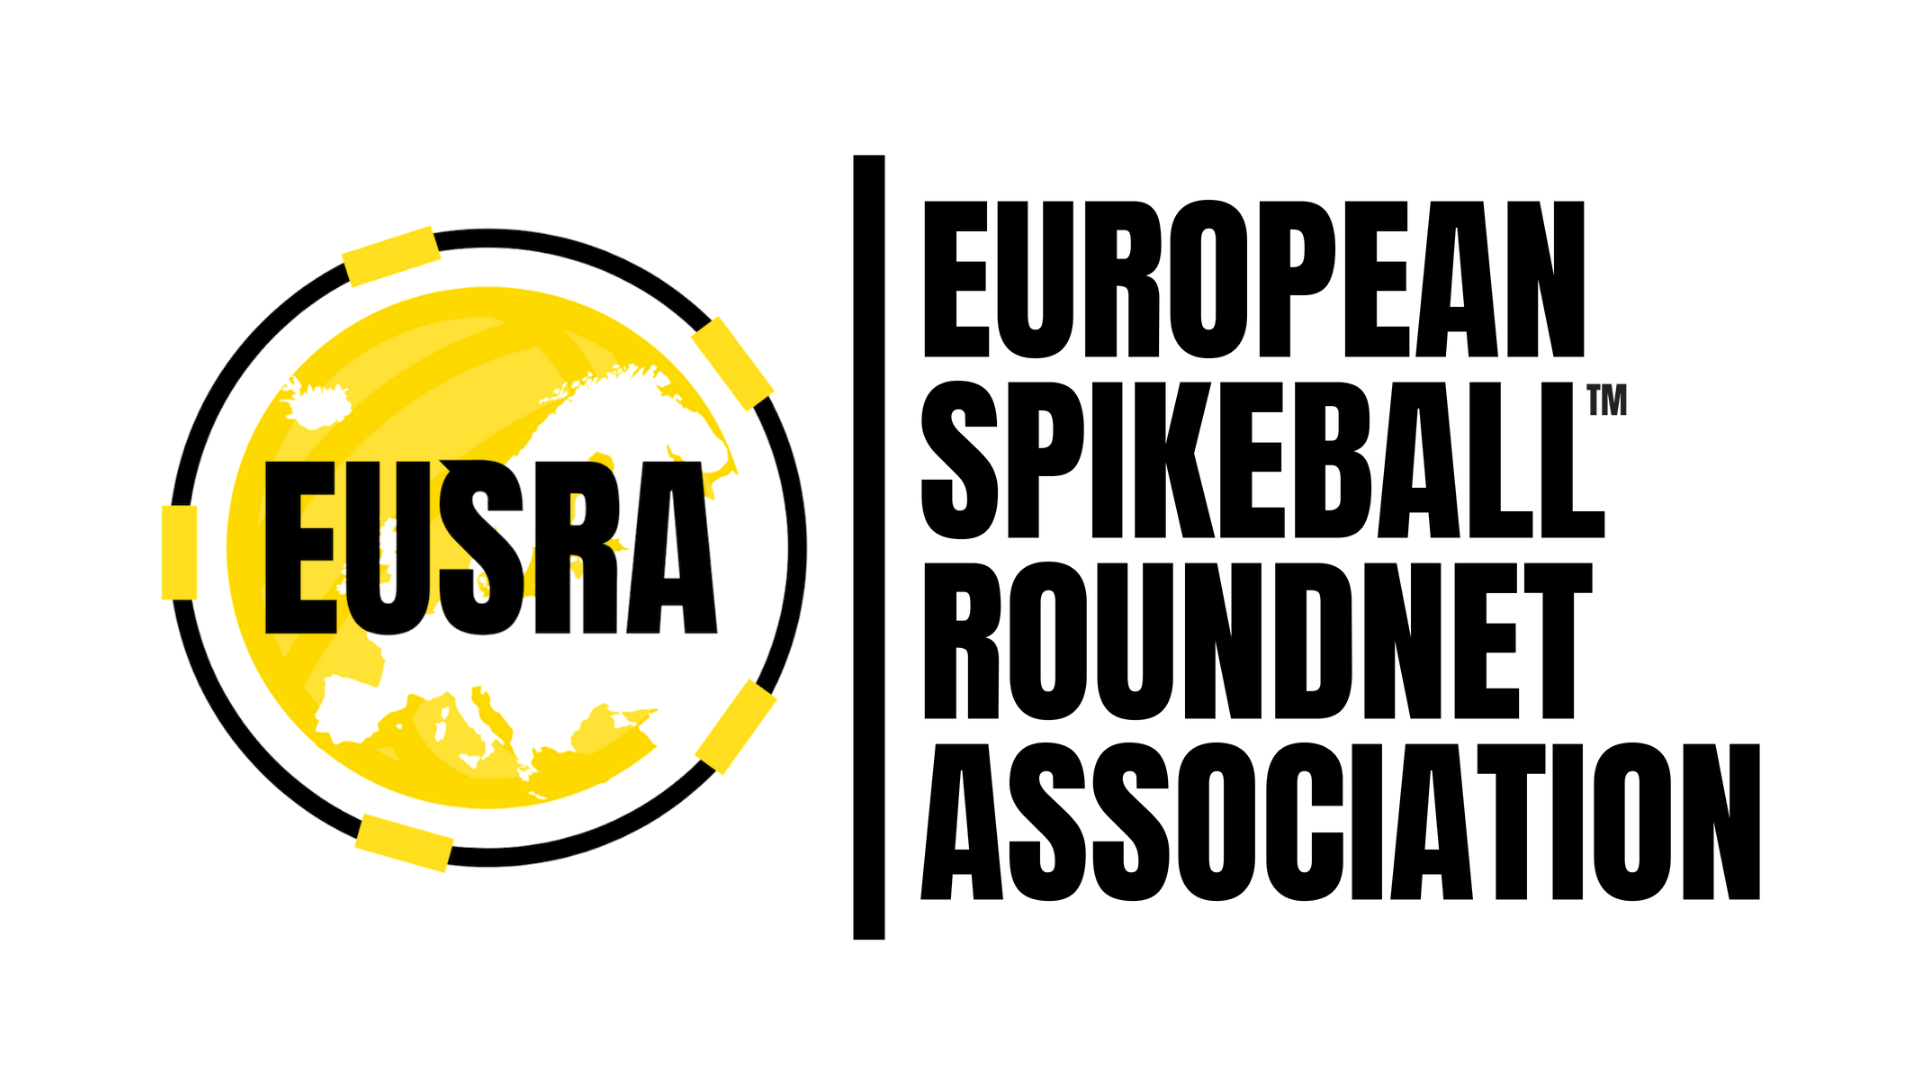 https://asociace.roundnet.cz/wp-content/uploads/2019/12/Copy-of-Copy-of-EUSRA-logo-BIG-ONE-4.png